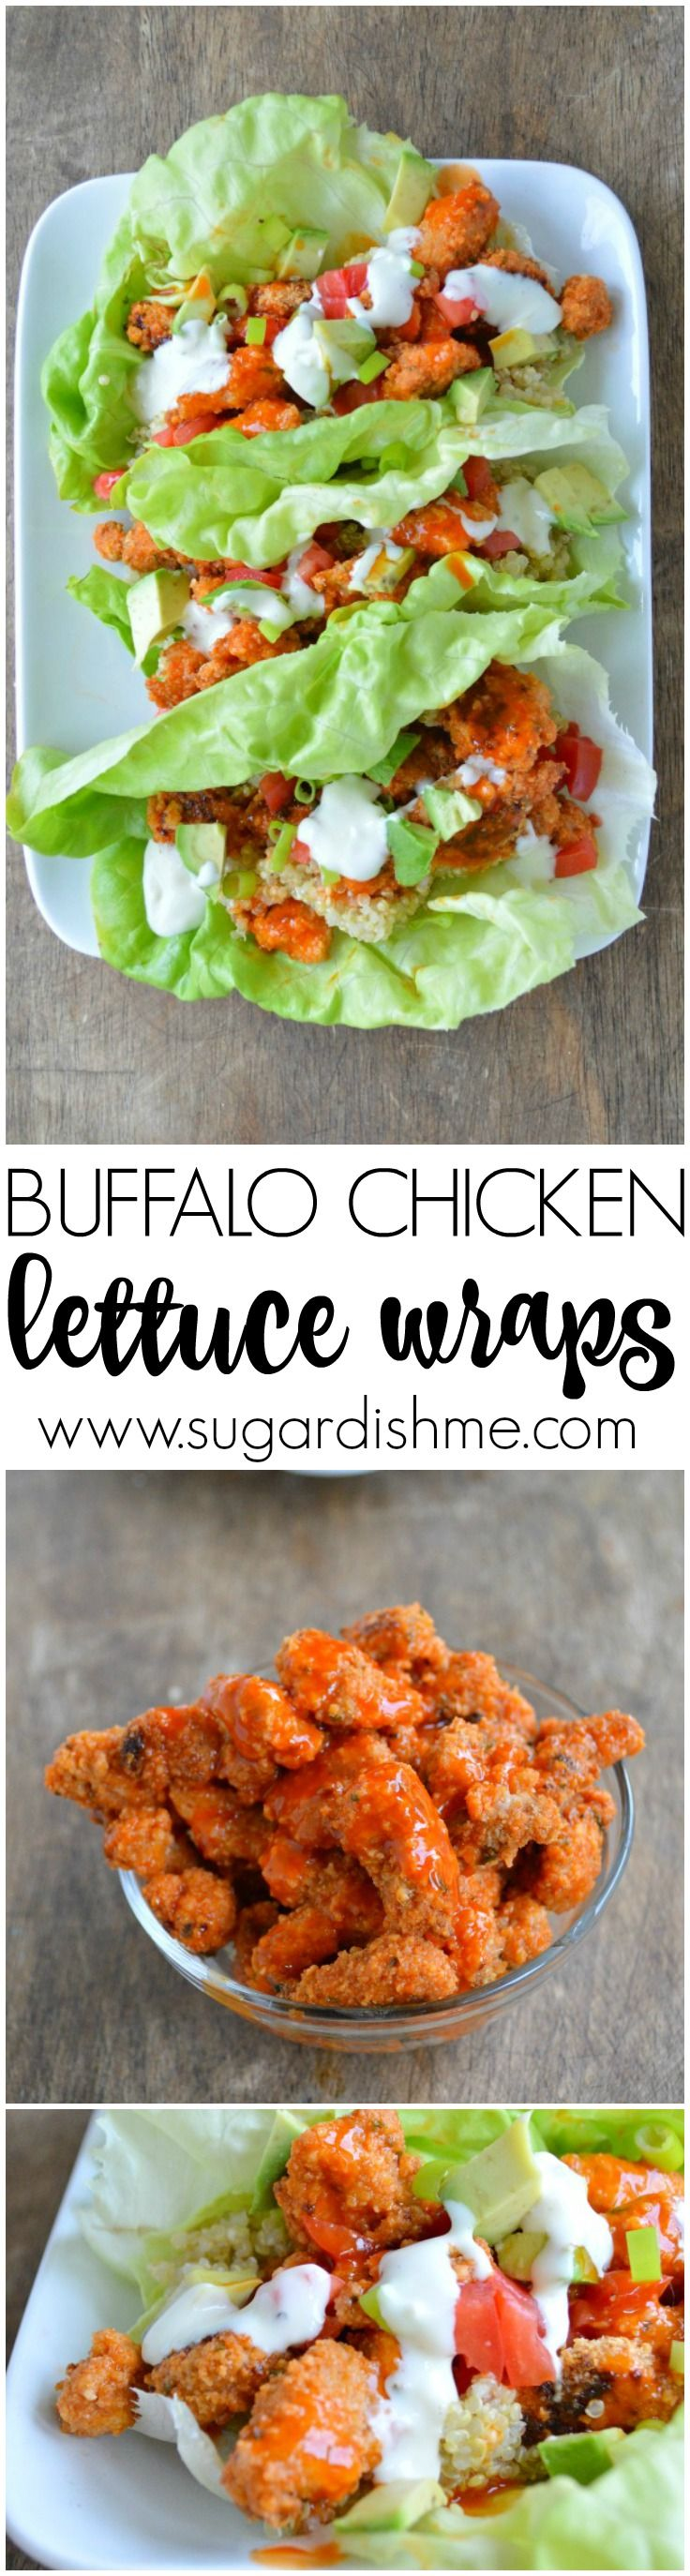 For good health what to eat - Buffalo Chicken Lettuce Wraps Have Been The Top Recipe On Sugar Dish Me Since 2014 Light Fresh And Easy Good For You But Still Tastes Like Junk Food